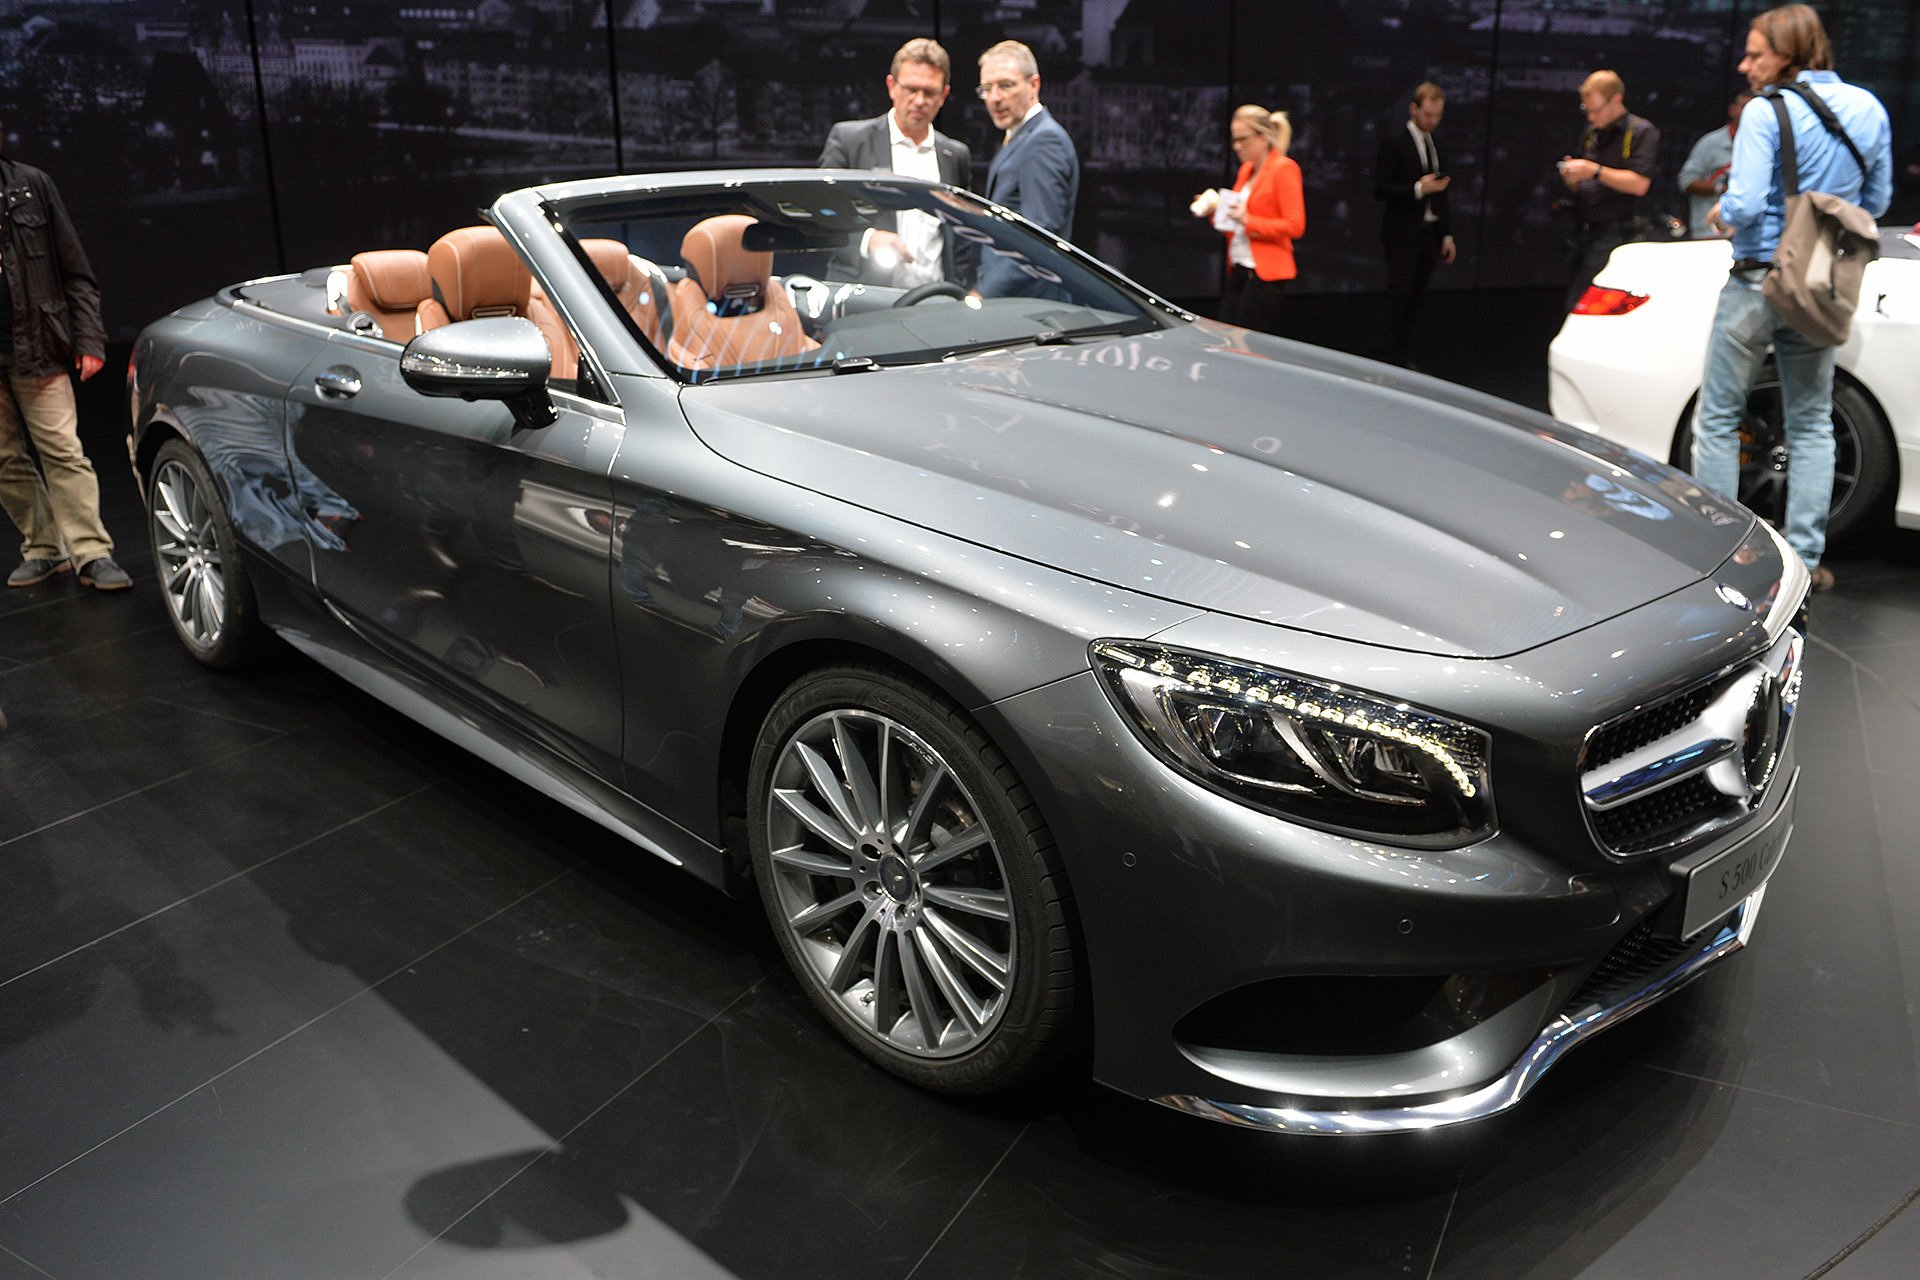 2016 mercedes s 500 cabriolet cars wallpaper 1920x1280 for Mercedes benz s550 convertible price